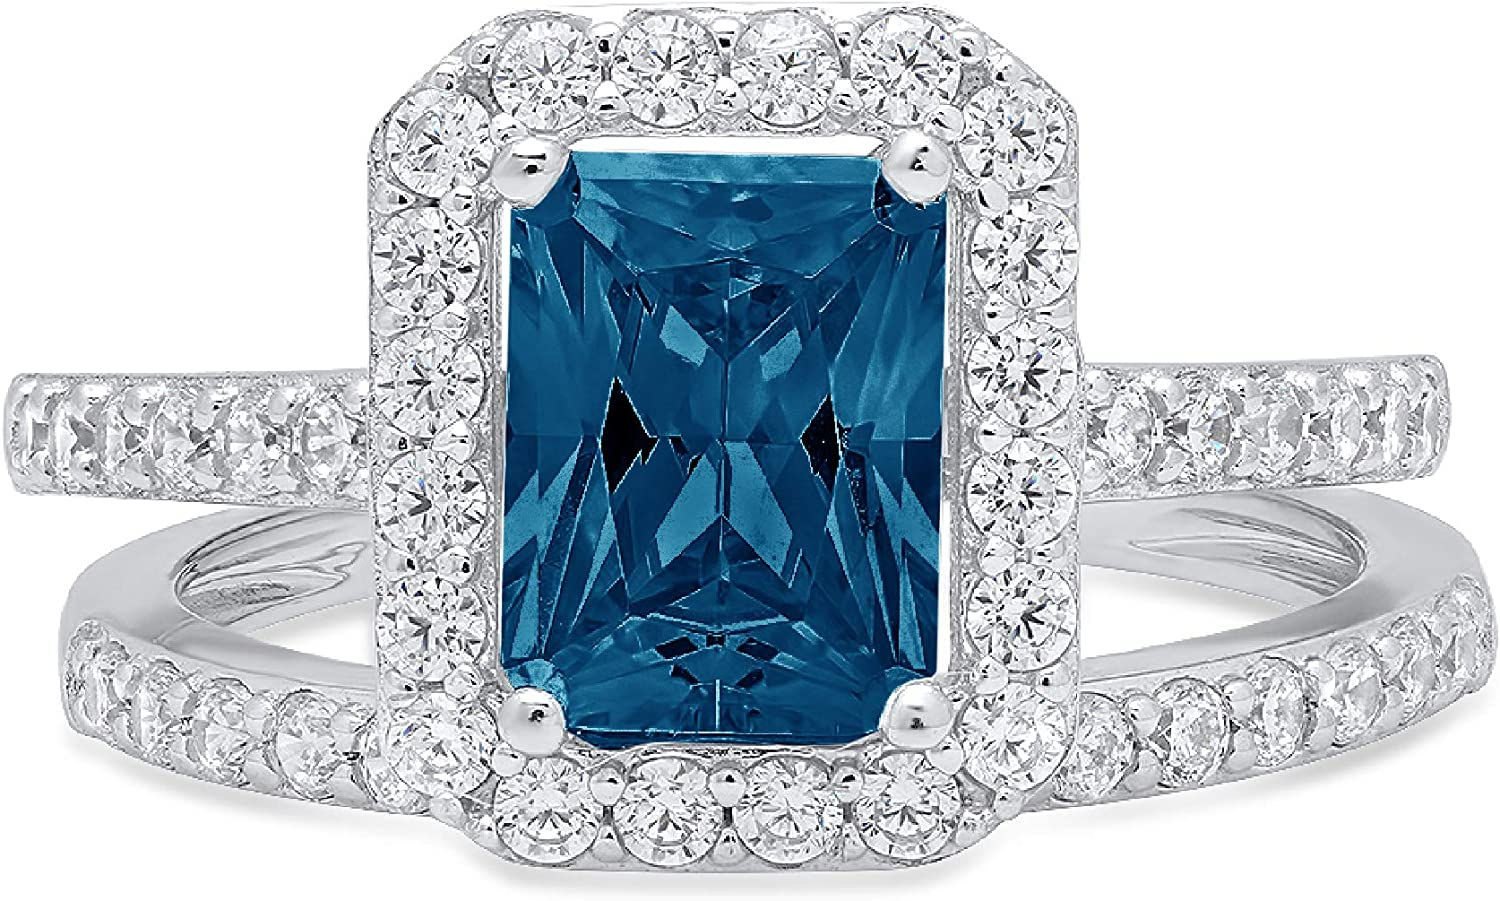 Outlet sale feature 2.17ct Emerald Round Cut Pave Accent Special Campaign Natural with Solitaire Halo